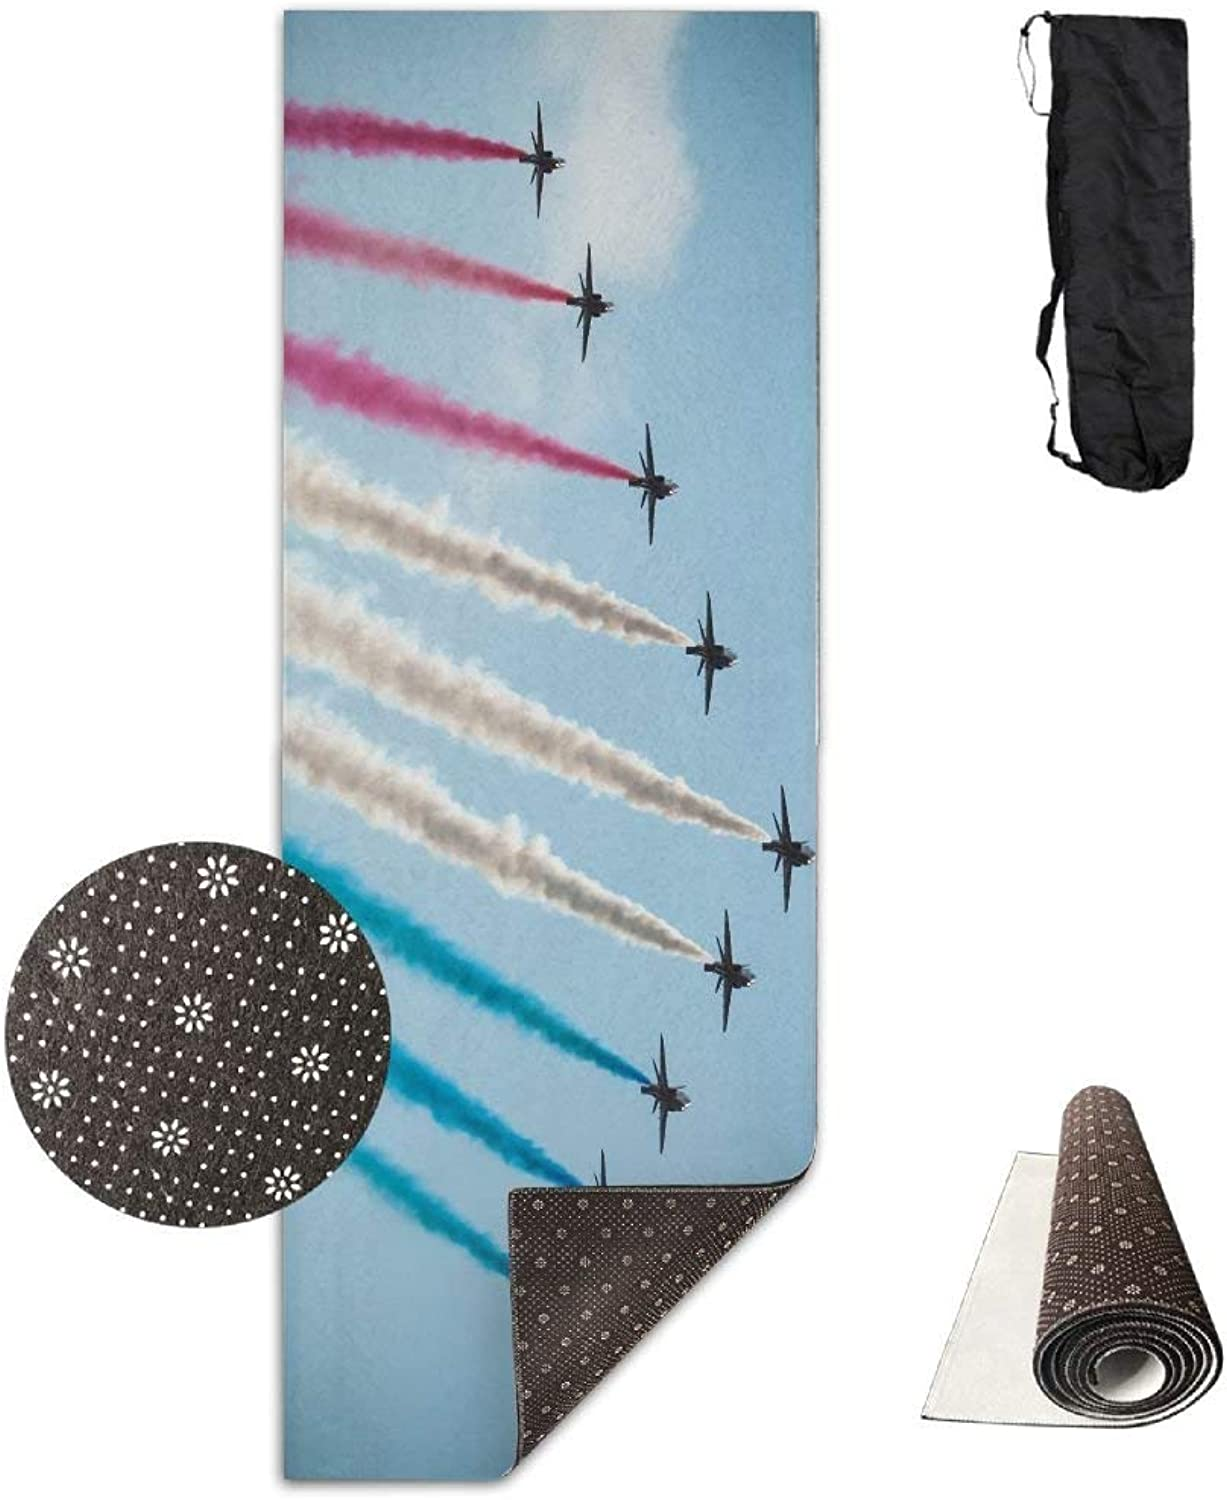 Airplanes Show in The Sky Yoga Mat Towel for Bikram Hot Yoga, Yoga and Pilates, Paddle Board Yoga, Sports, Exercise, Fitness Towel